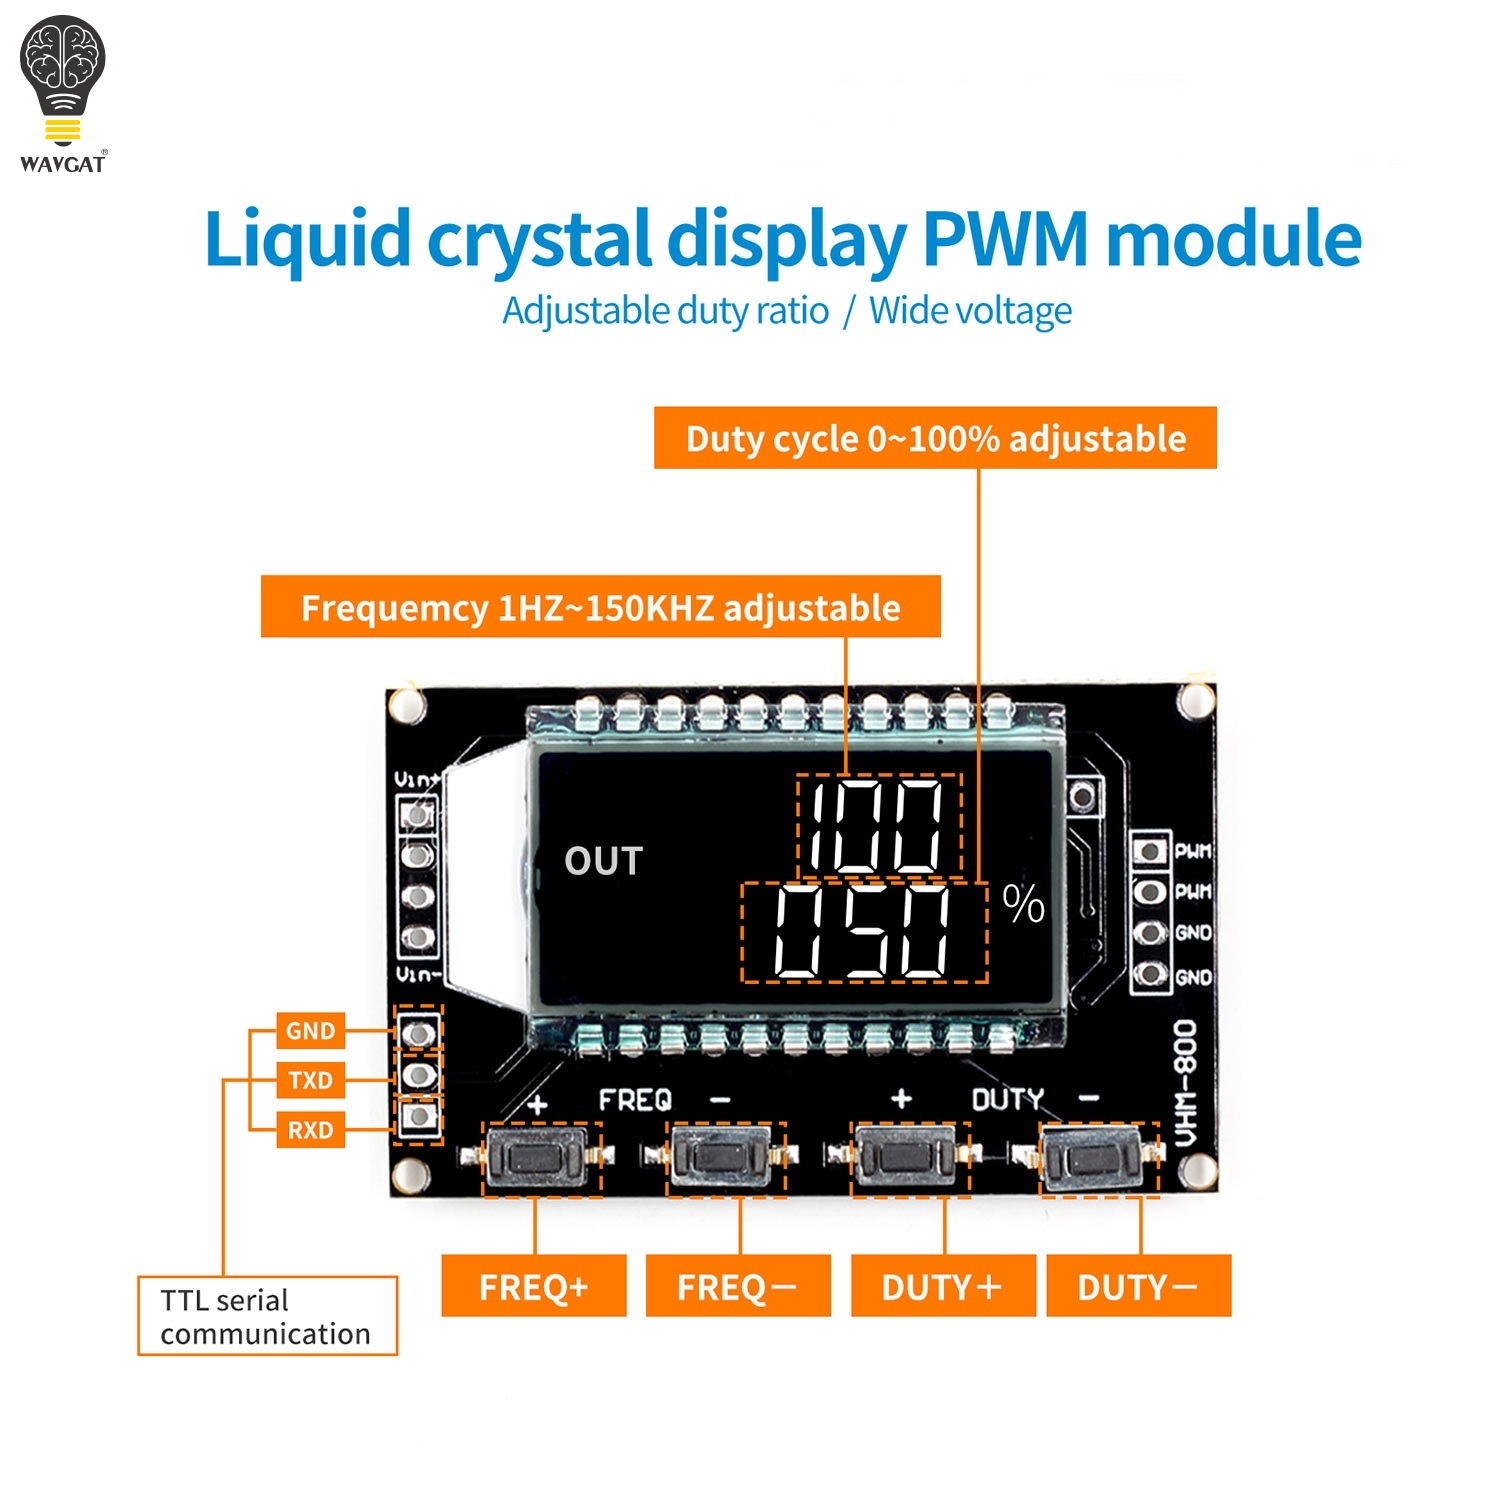 WAVGAT Signal Generator PWM Pulse Frequency Duty Cycle Adjustable Module LCD Display 1Hz-150Khz 3.3V-30V PWM Board ModuleWAVGAT Signal Generator PWM Pulse Frequency Duty Cycle Adjustable Module LCD Display 1Hz-150Khz 3.3V-30V PWM Board Module